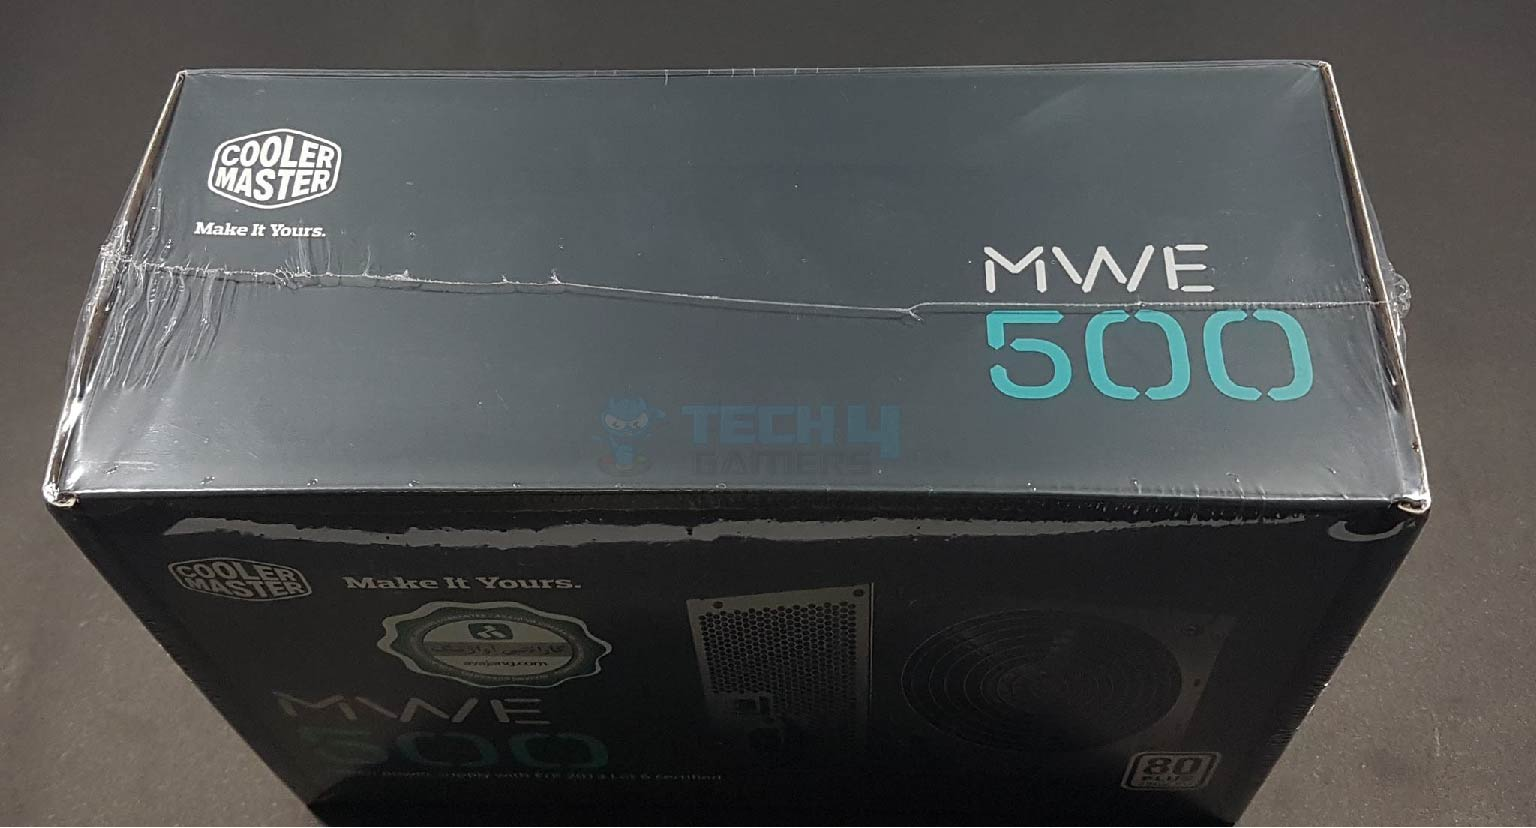 Cooler Master MWE 500 (MPW-5002-ACABW) Review